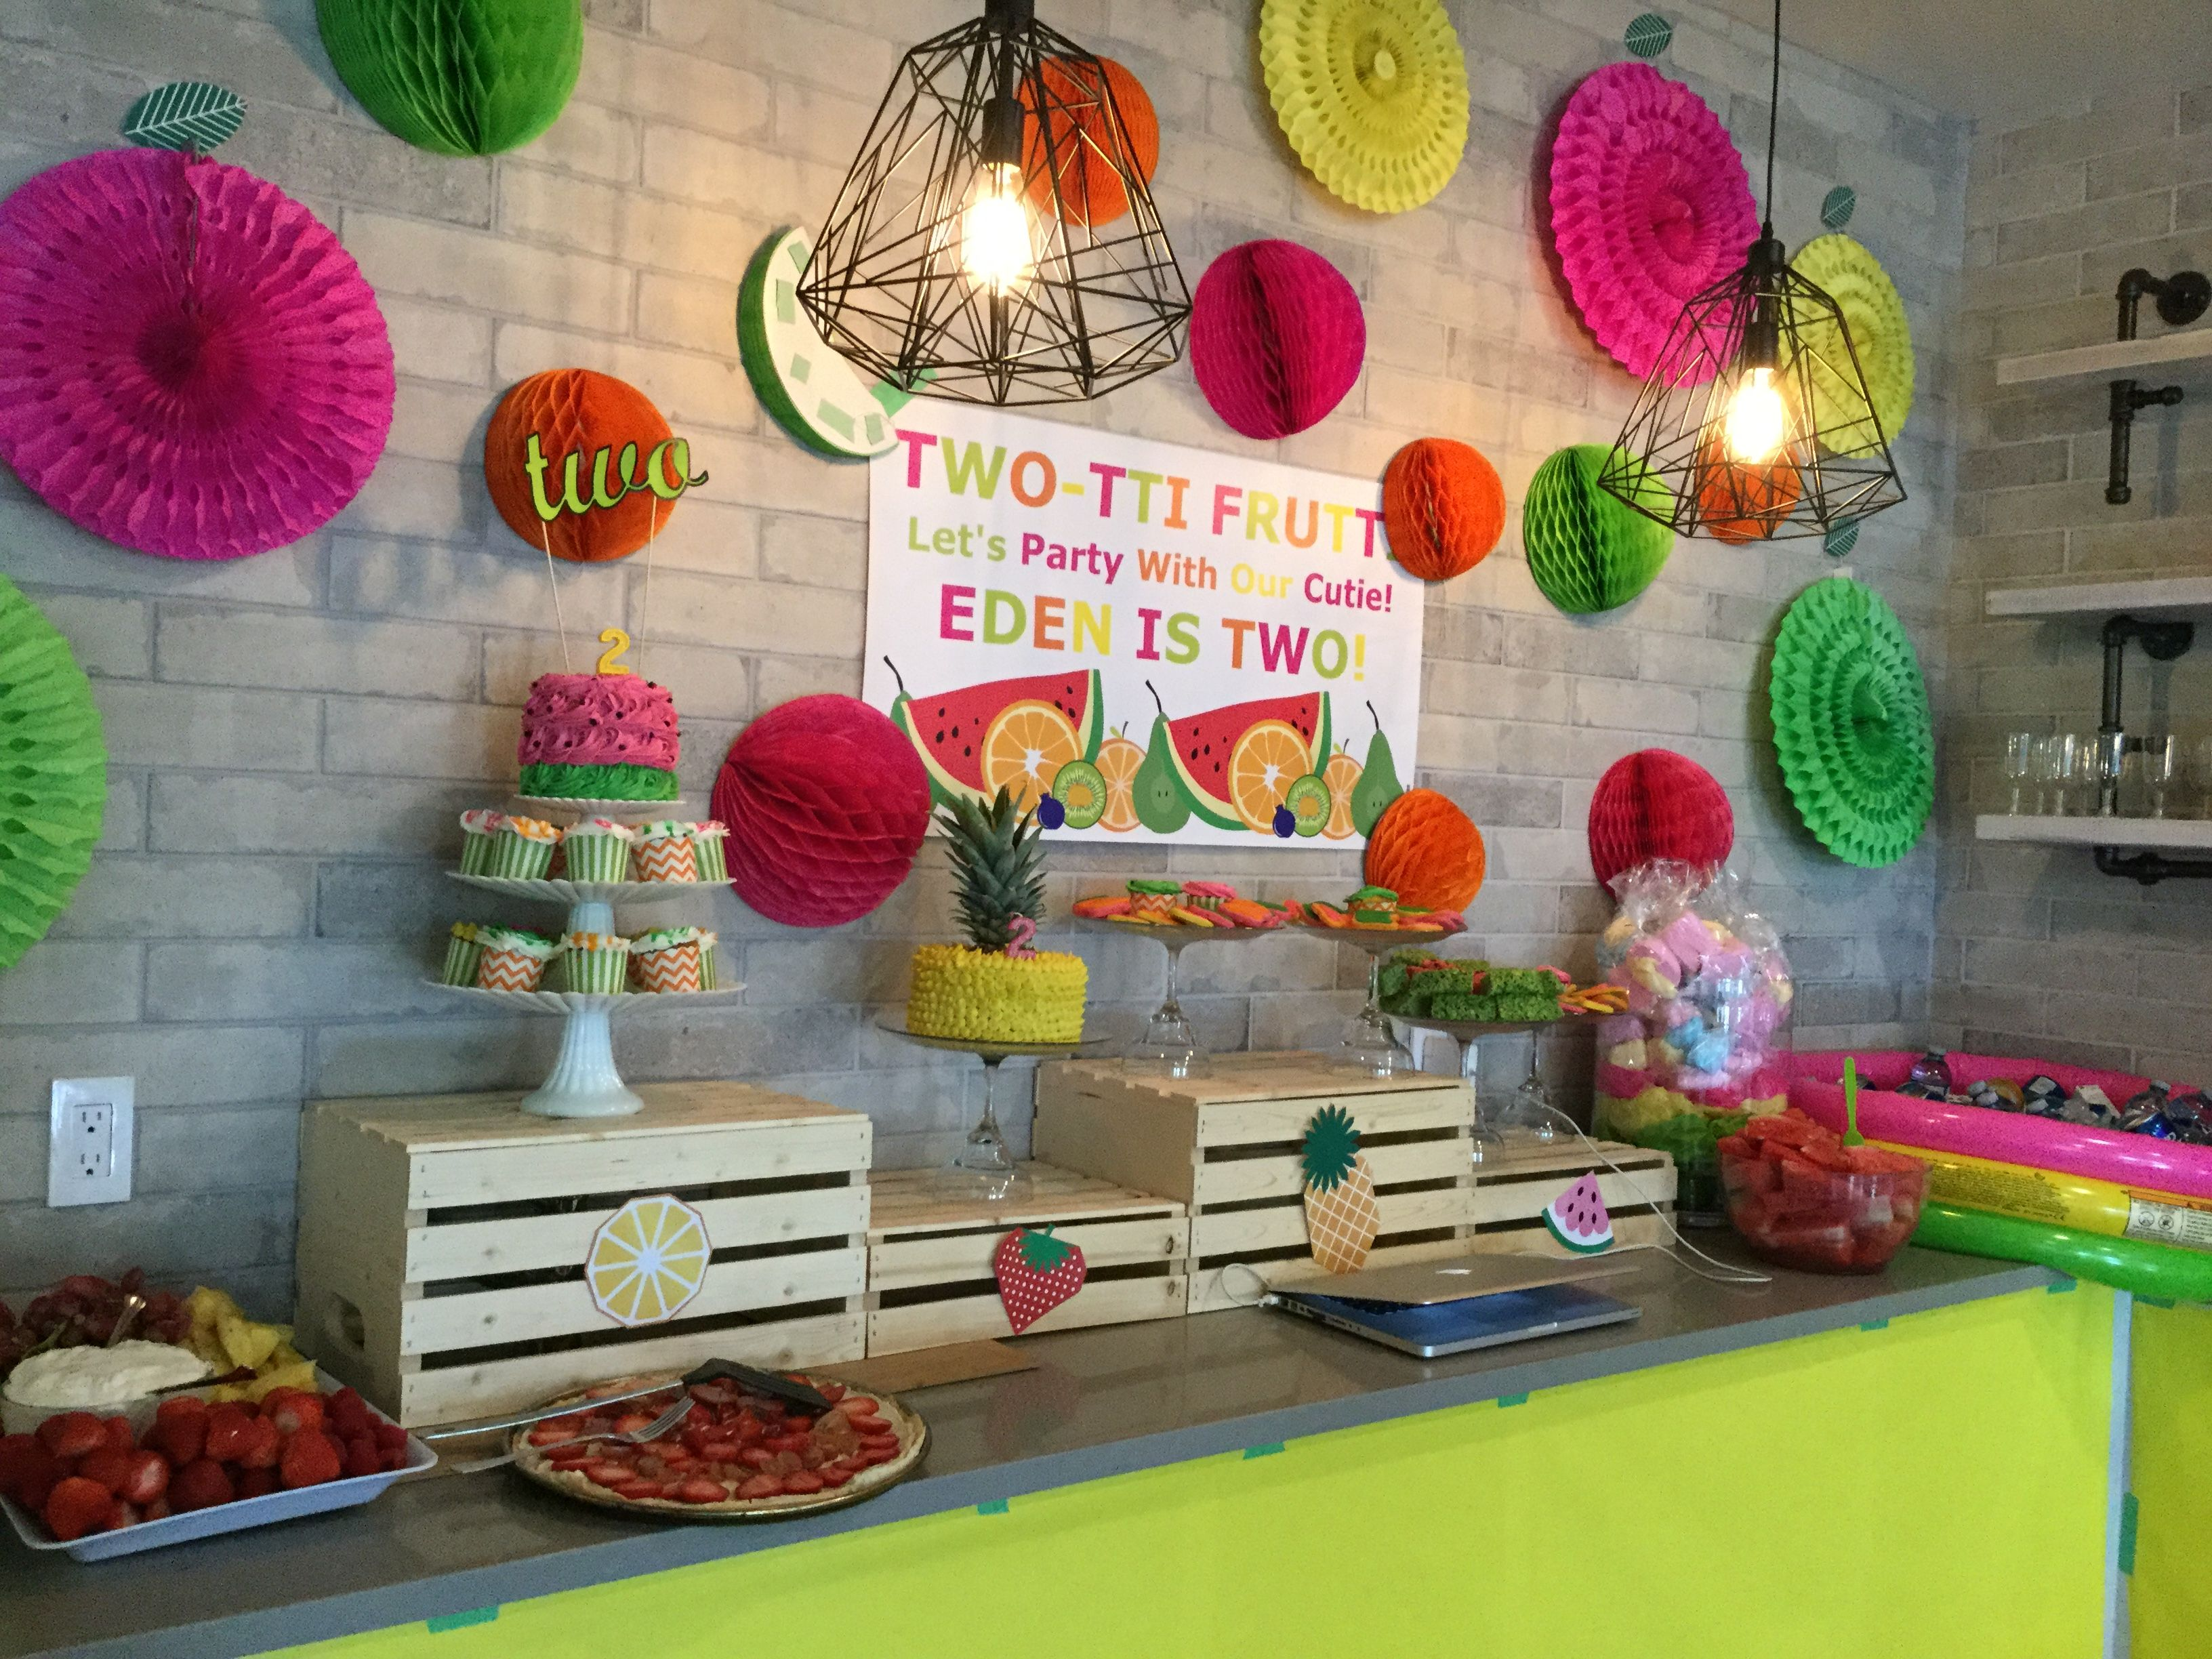 Tutti frutti, two-tti frutti, tutti fruity, two-tti fruity tablescape